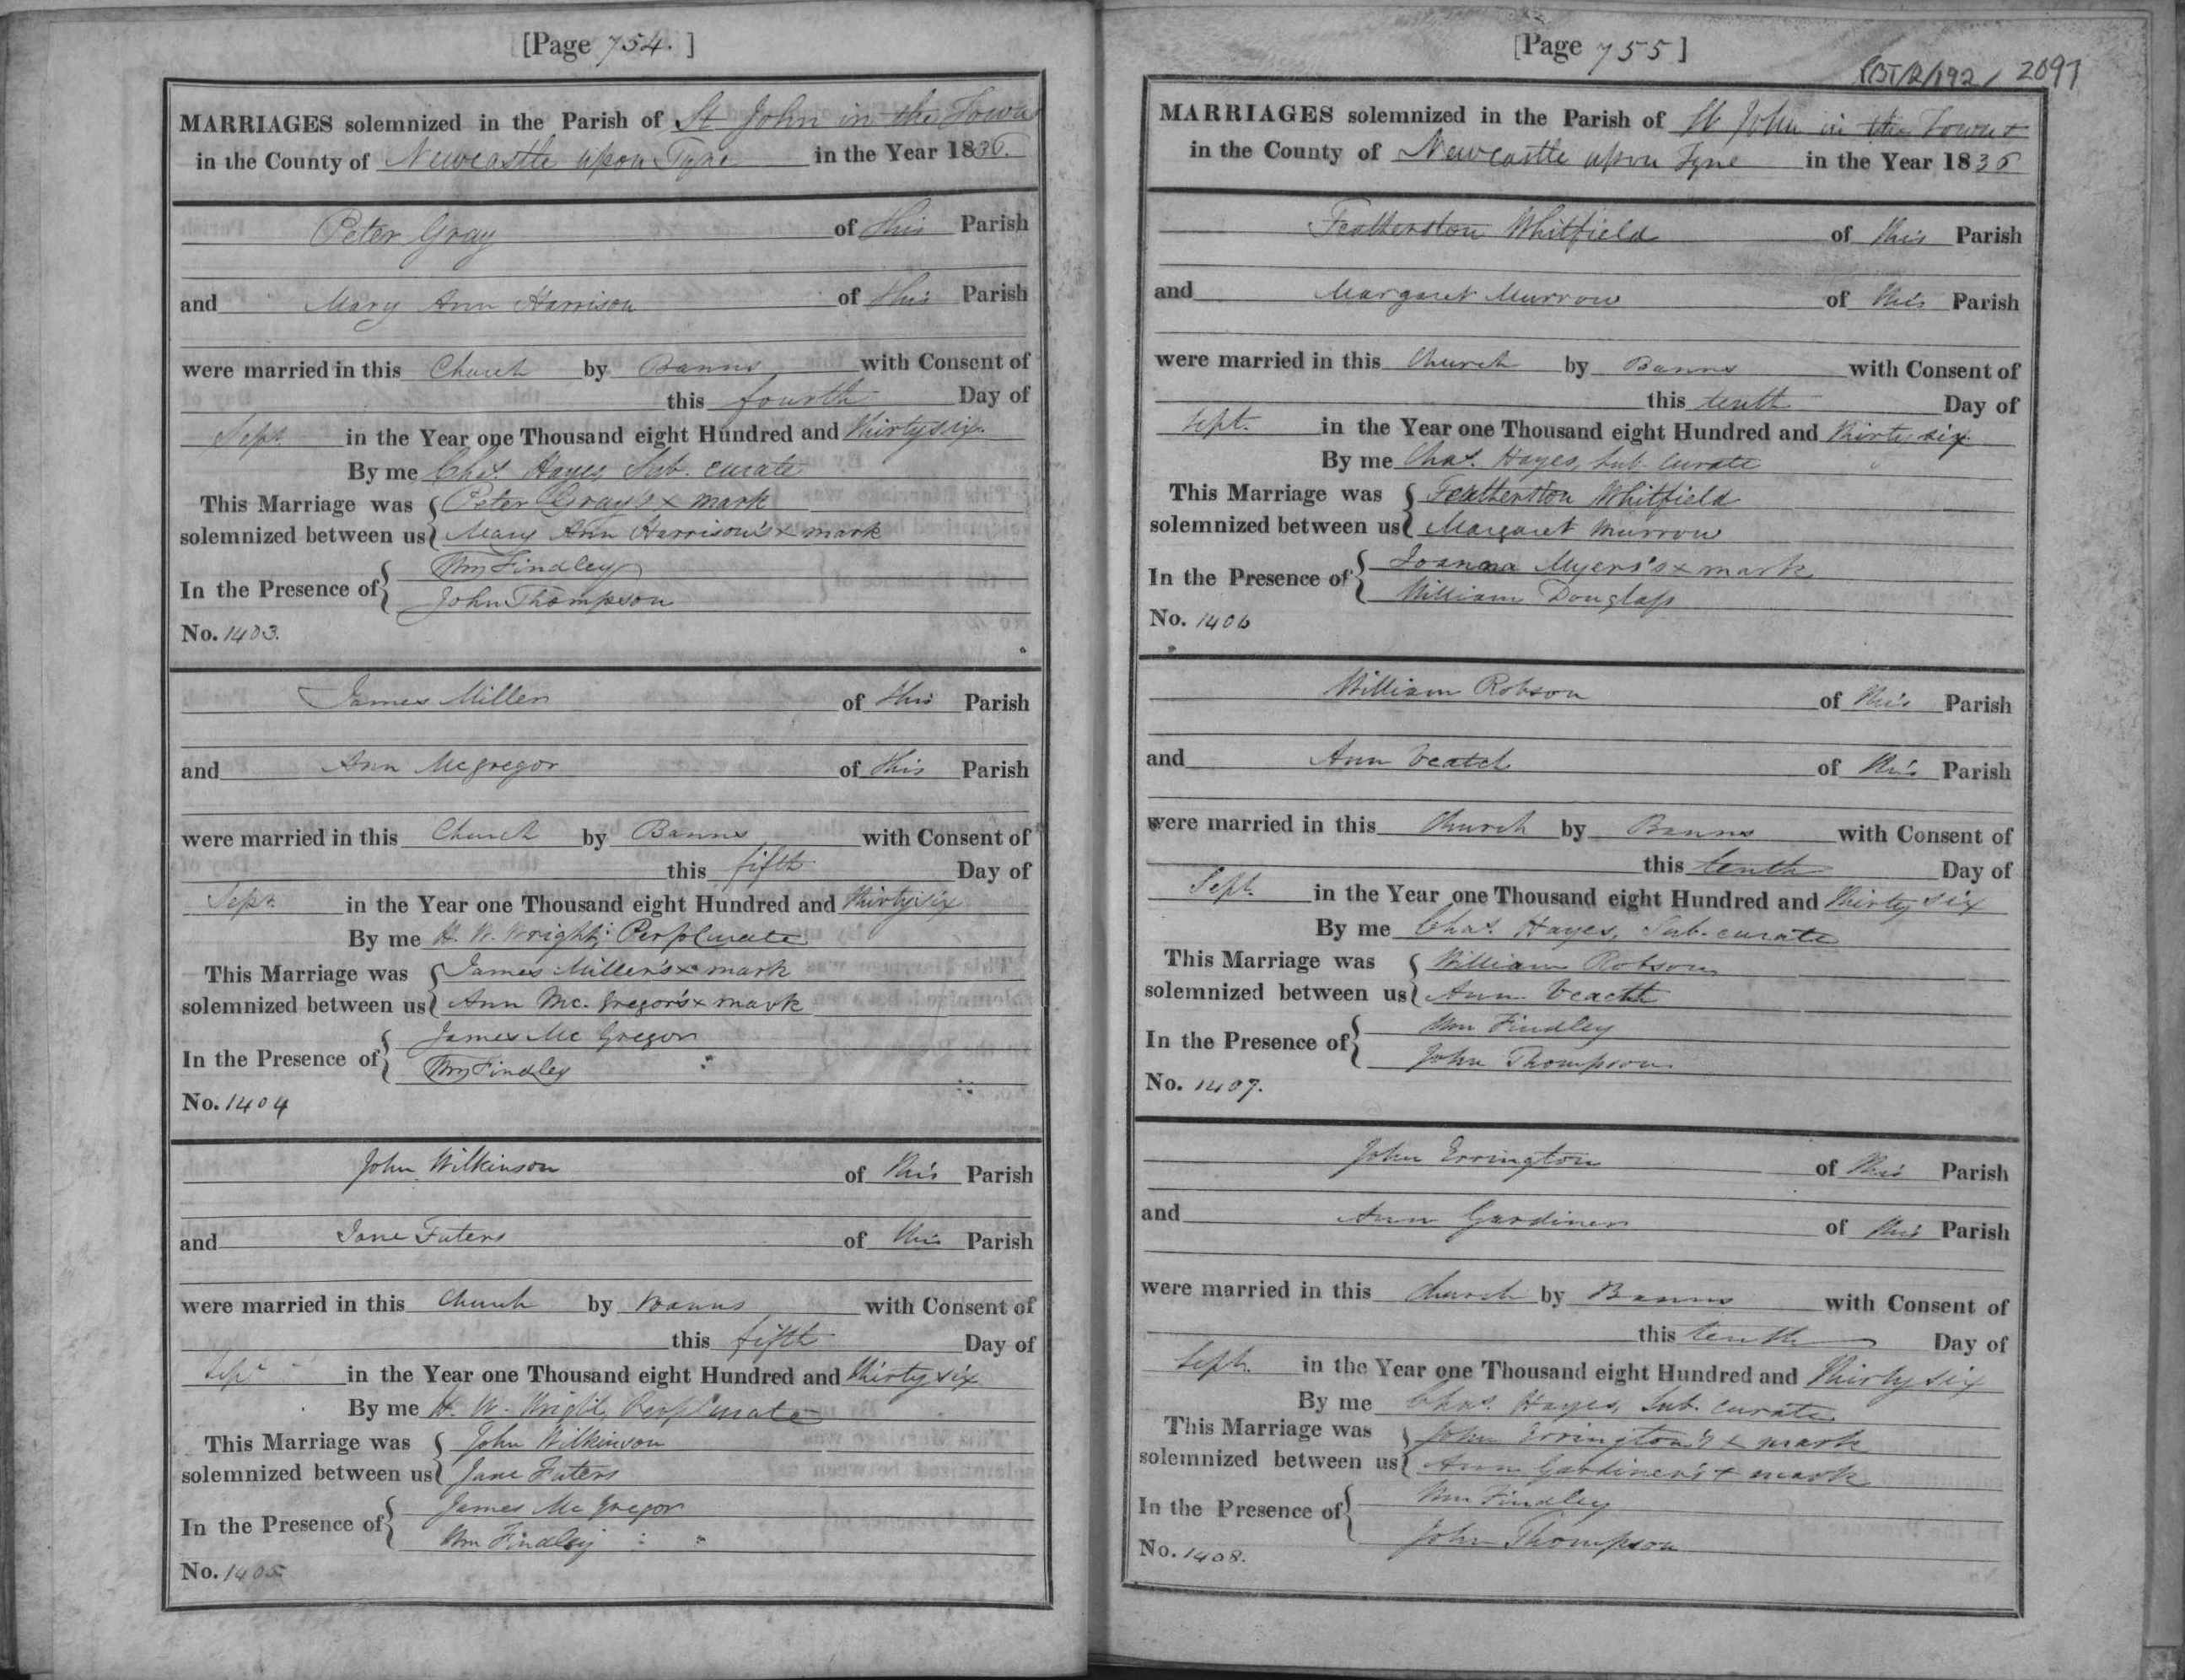 The Robson Family of Wallsend and Newcastle upon Tyne